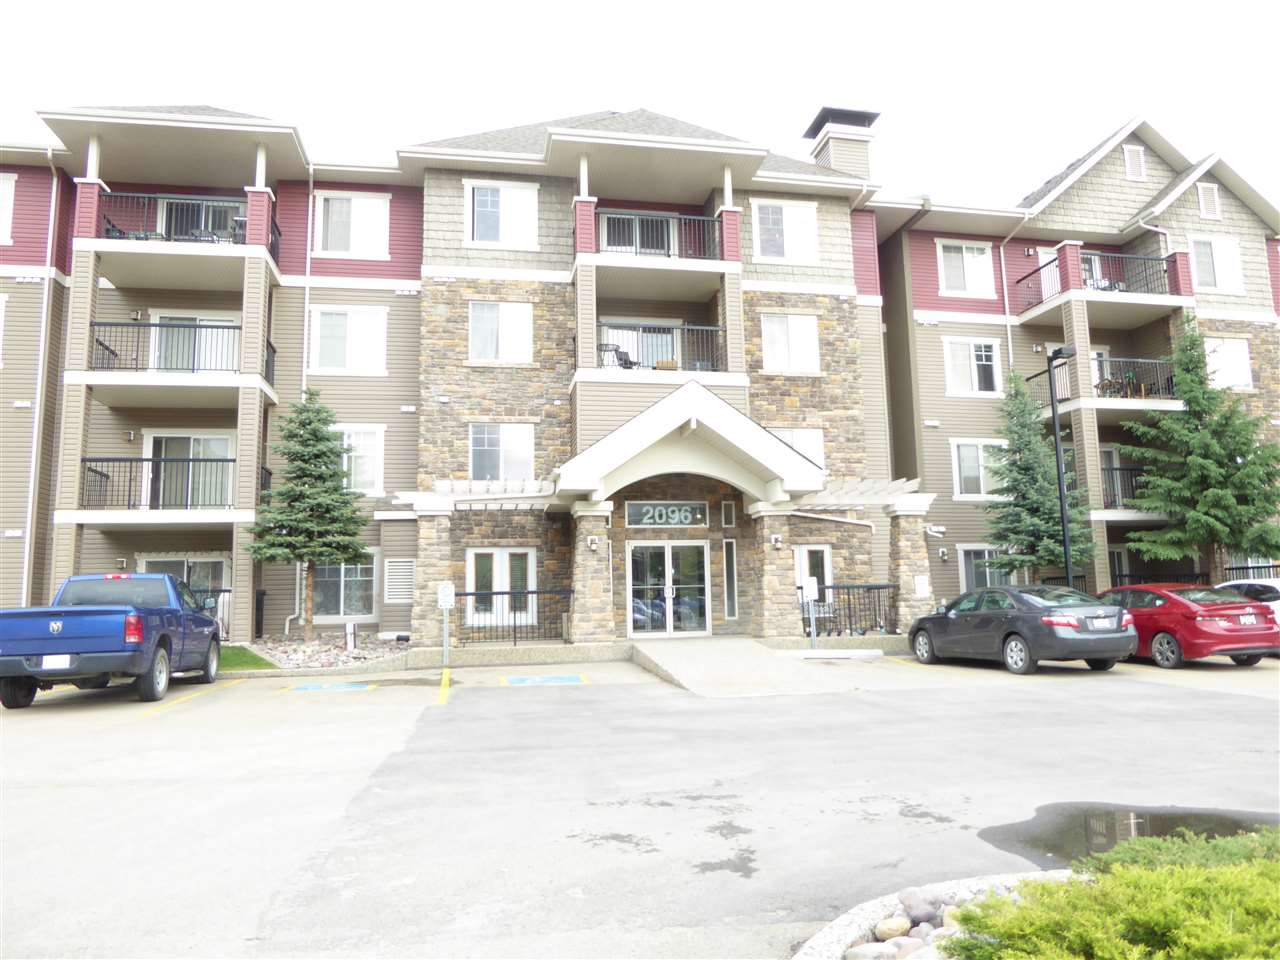 MLS® listing #E4161277 for sale located at 335 2096 Blackmud Creek Drive SW